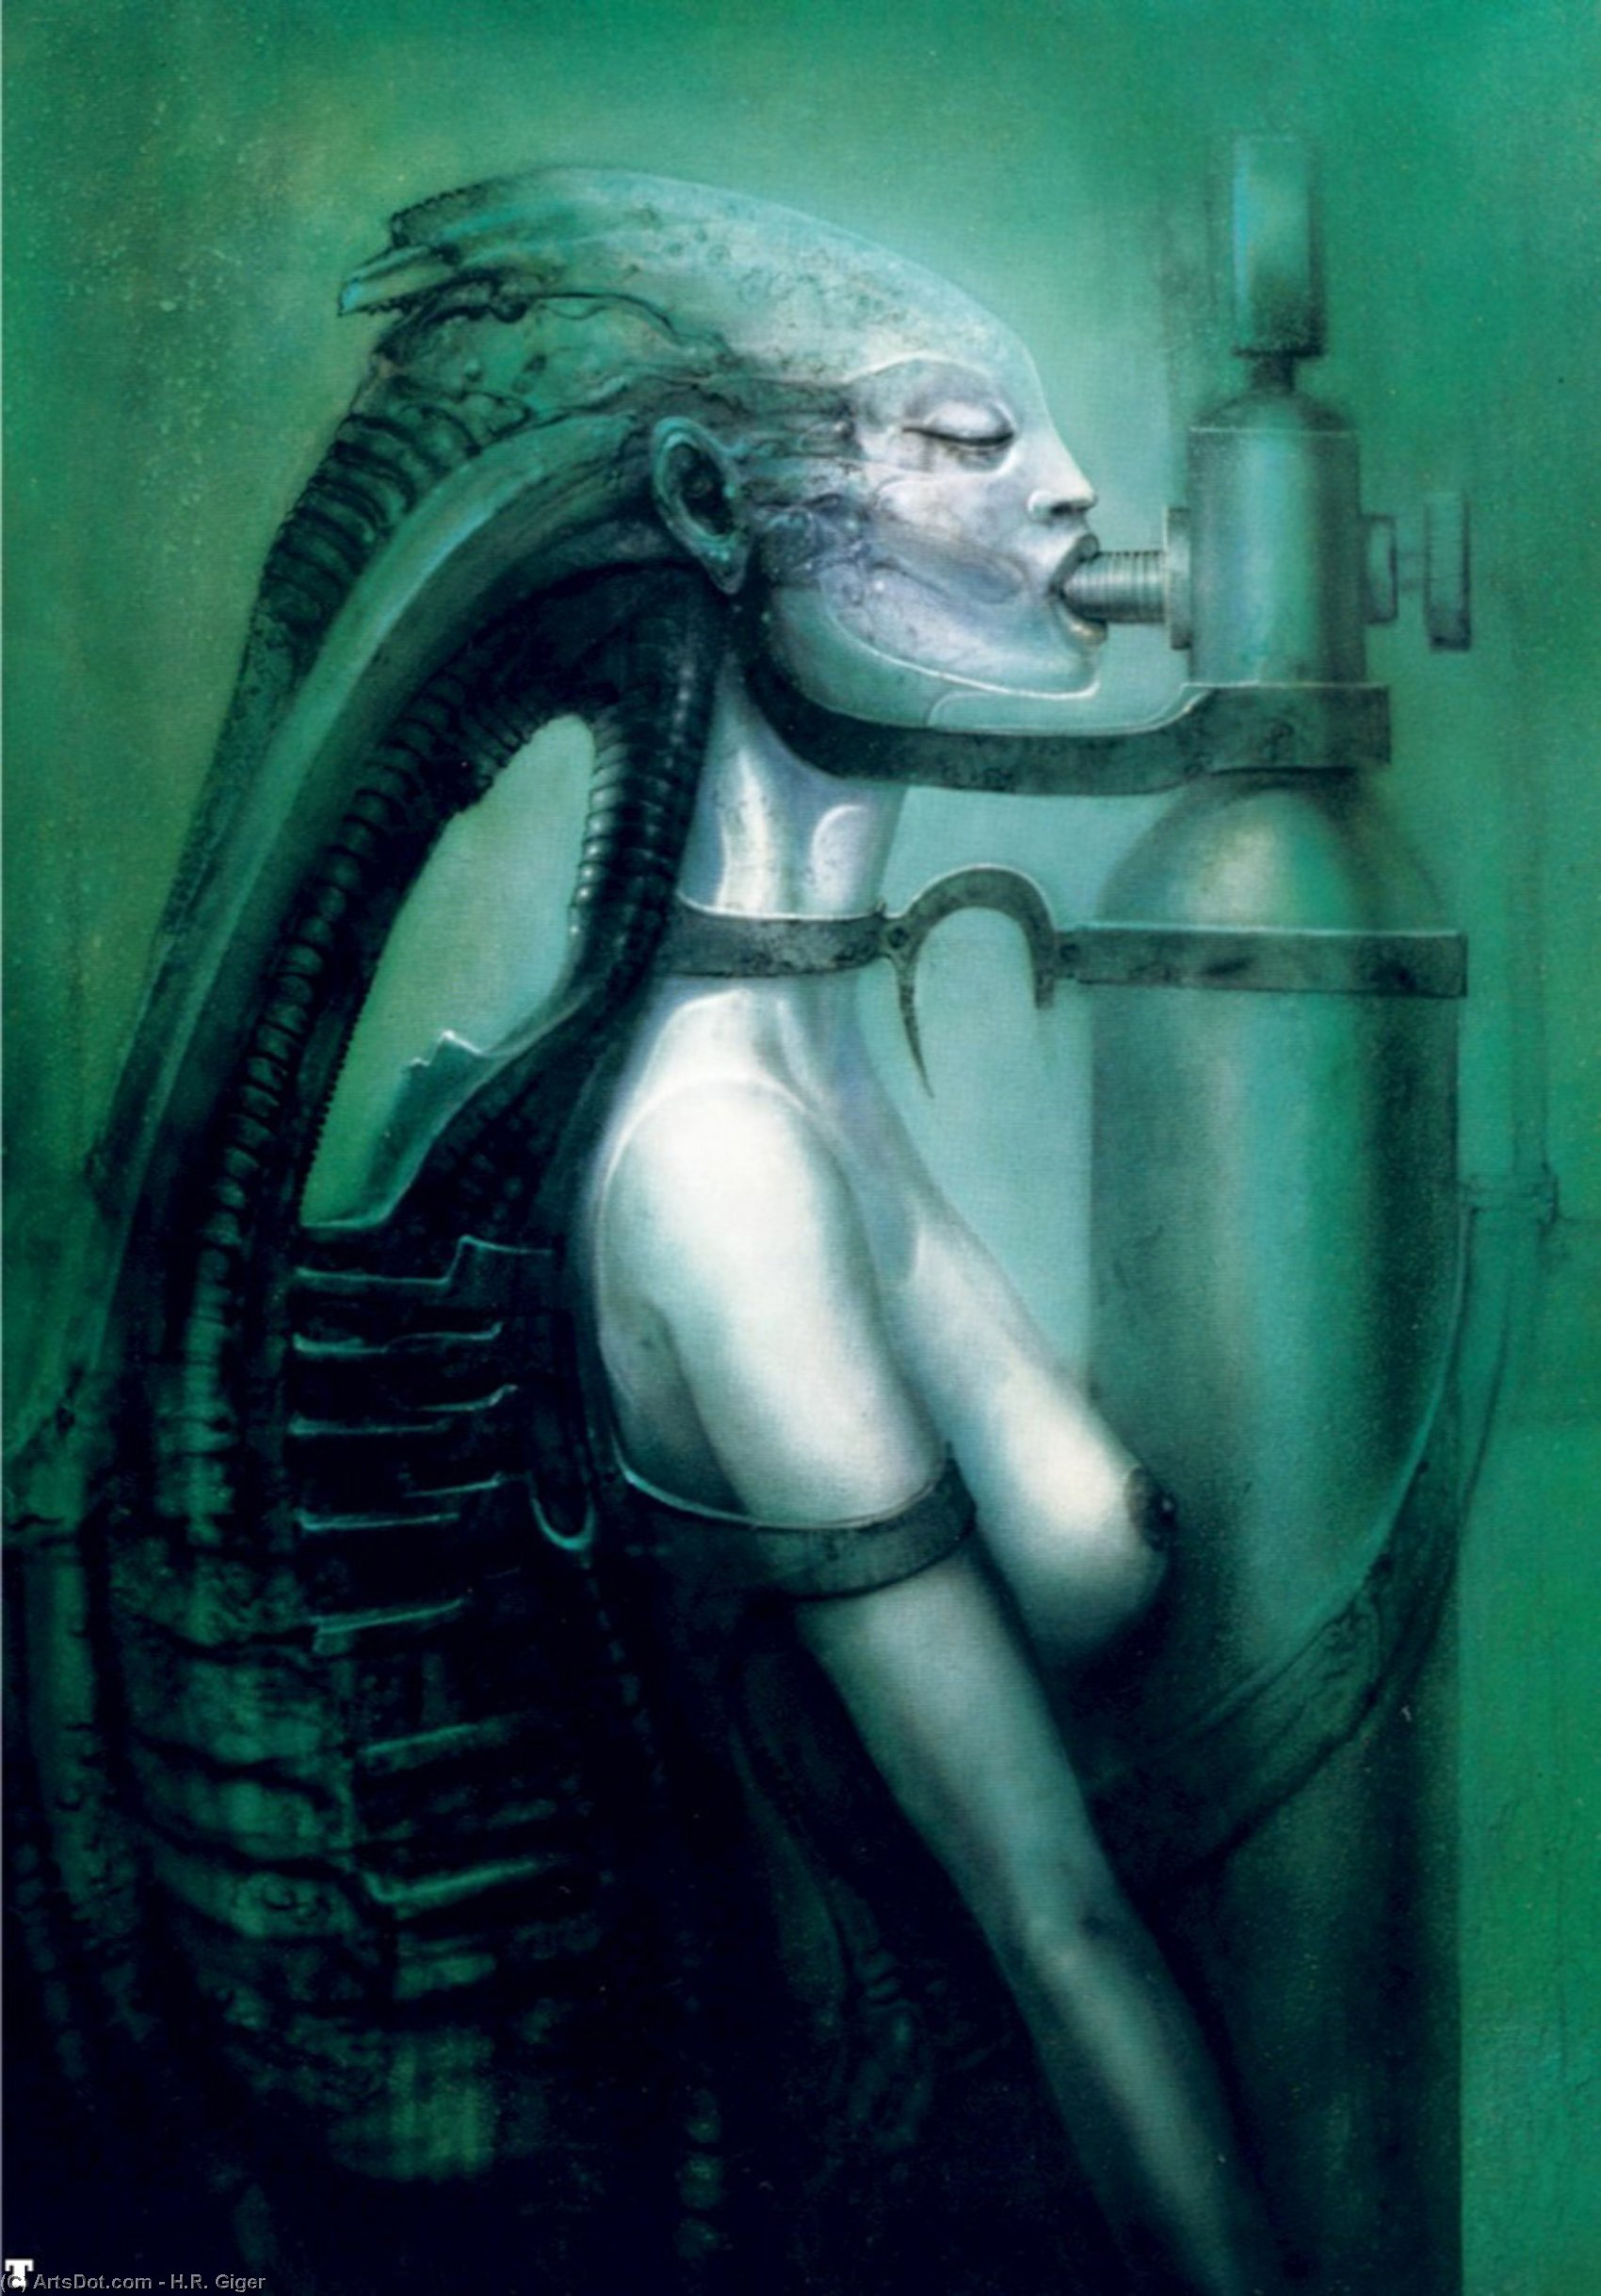 Wikioo.org – L'Enciclopedia delle Belle Arti - Pittura, Opere di H.R. Giger - Hr giger biomechanoid - ( 75 )